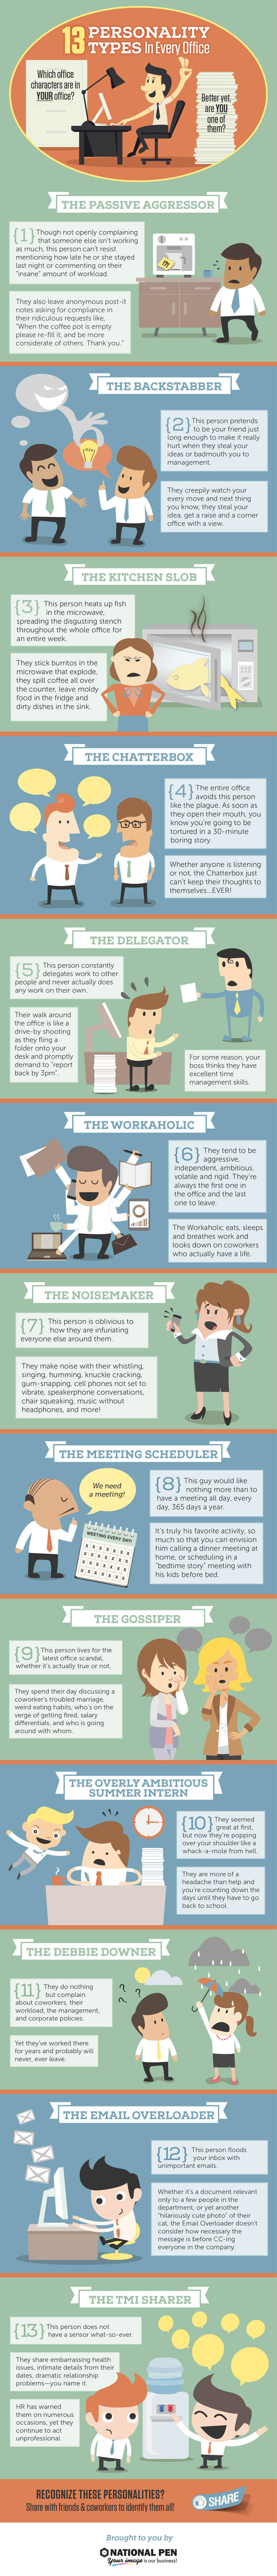 13-personality-types-whos-in-your-office_5249b6f421f81